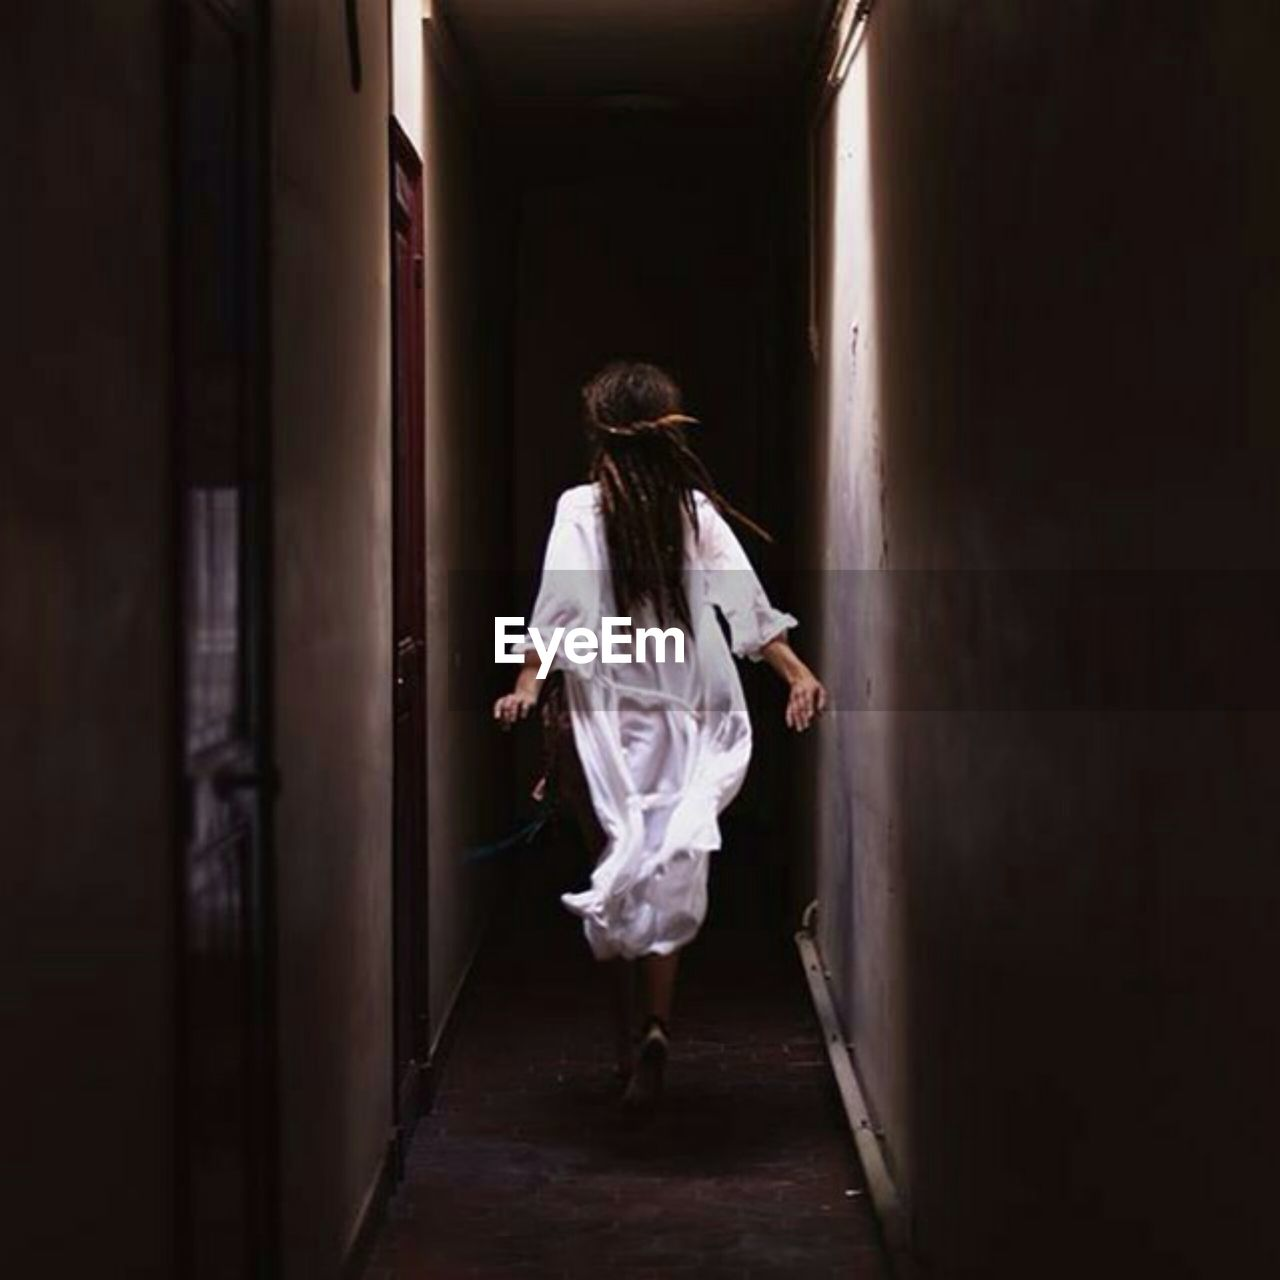 full length, one person, rear view, indoors, adult, fear, corridor, arcade, walking, horror, spooky, entrance, mystery, hairstyle, building, door, women, emotion, leaving, ghost